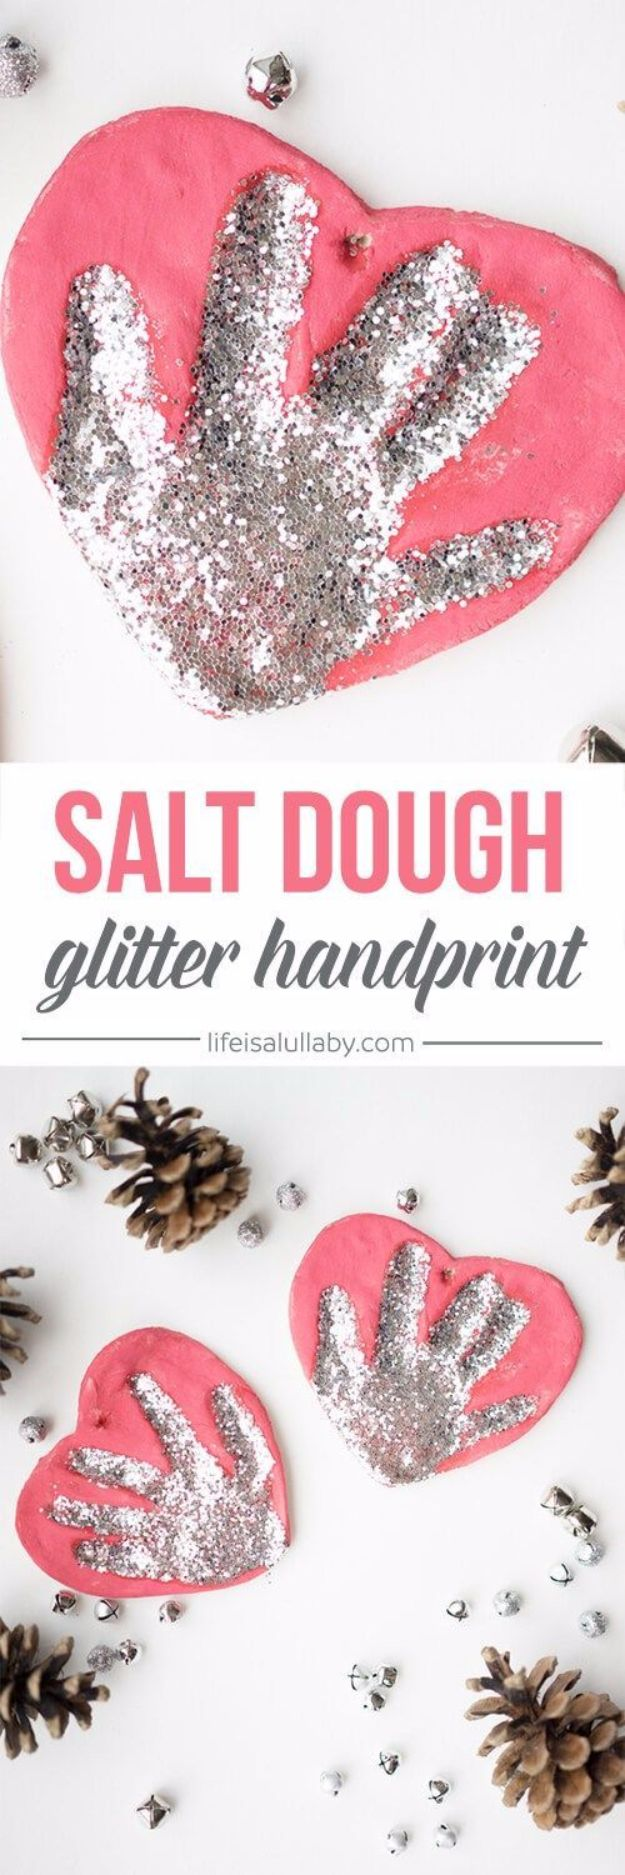 DIY Ideas WIth Glitter - Salt Dough Handprint Ornament - Easy Crafts and Projects for Decoration, Gifts, and Bedroom Decor - How To Make Ombre, Mod Podge and Glitter Mason Jar Gift Ideas For Teens - Easy Clothes and Makeup Crafts For Teenagers #diyideas #glitter #crafts